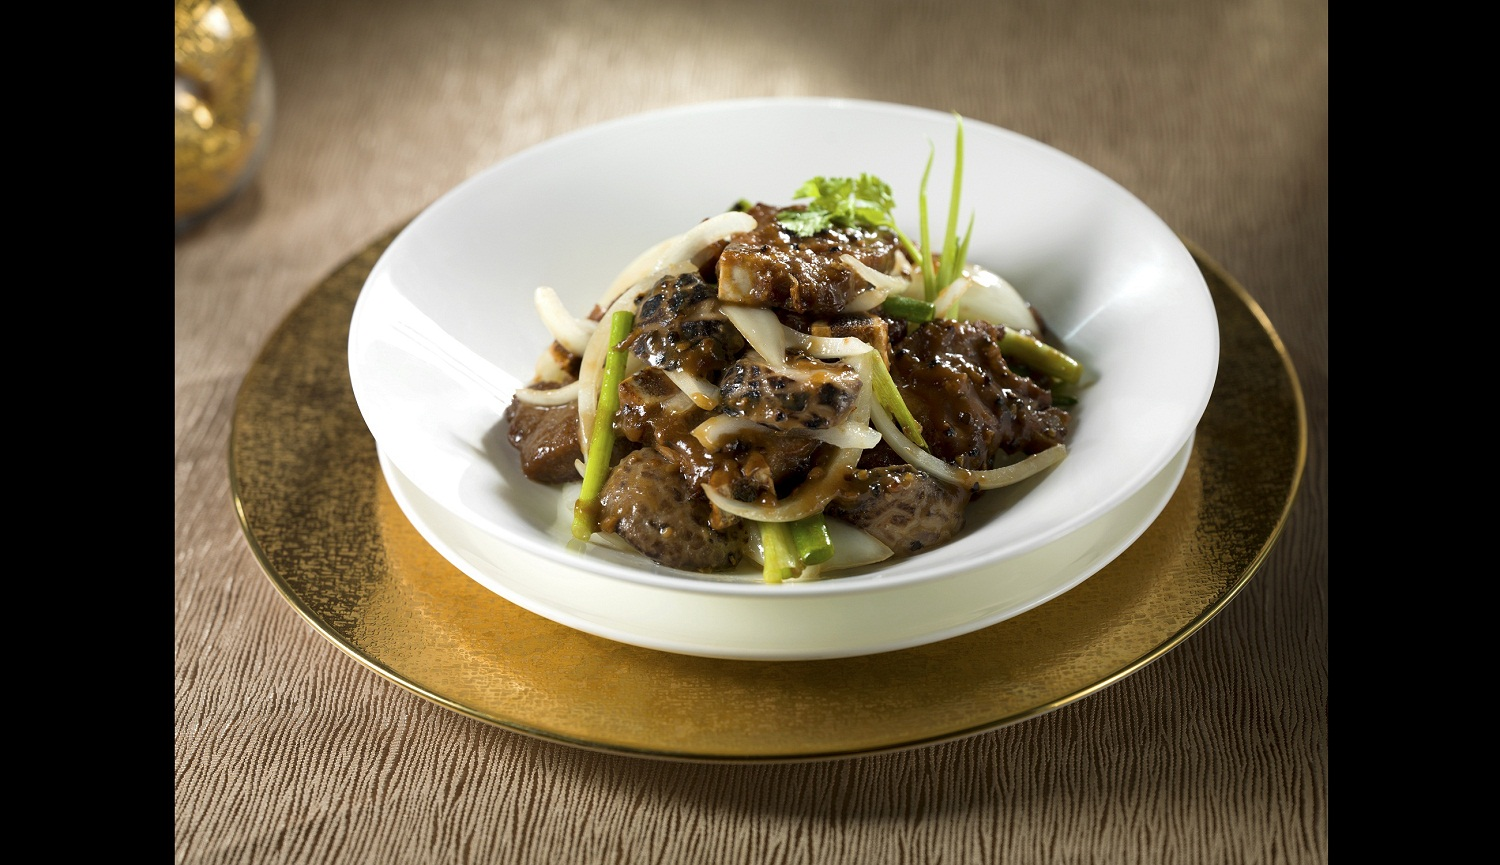 Stir-fried Short Ribs with Onion and Mushroom in Black Pepper